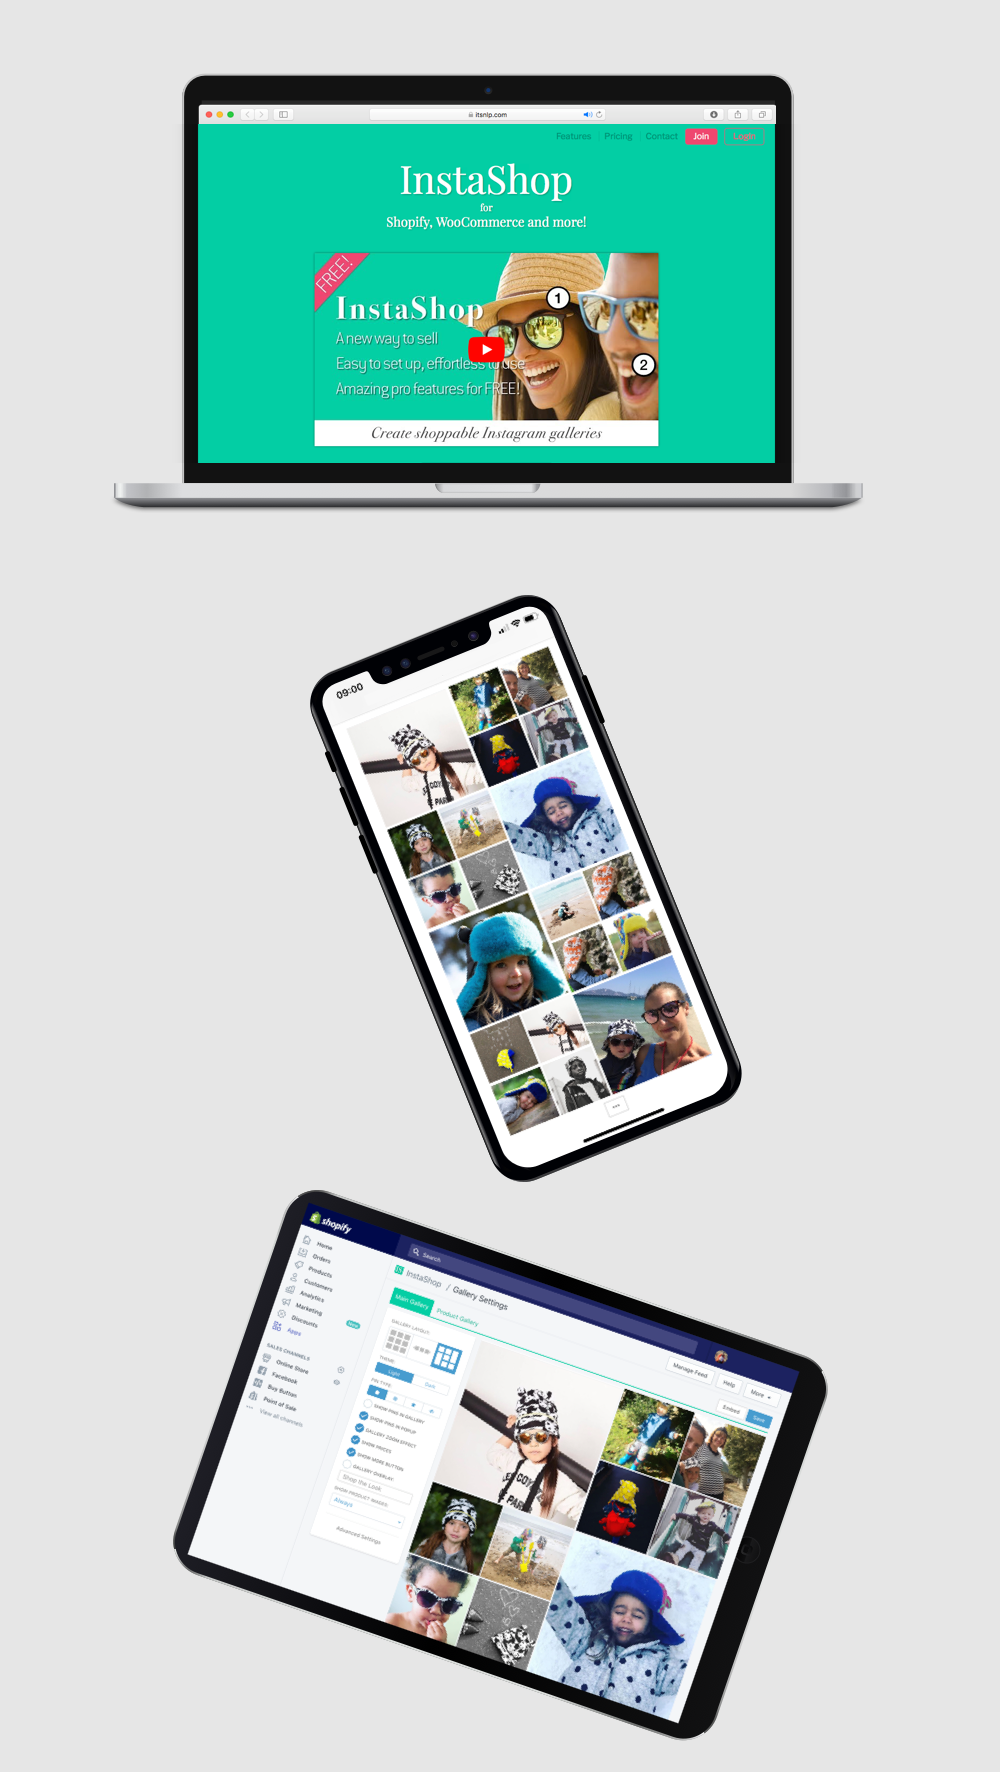 The Instashop app displayed on desktop, tablet and mobile